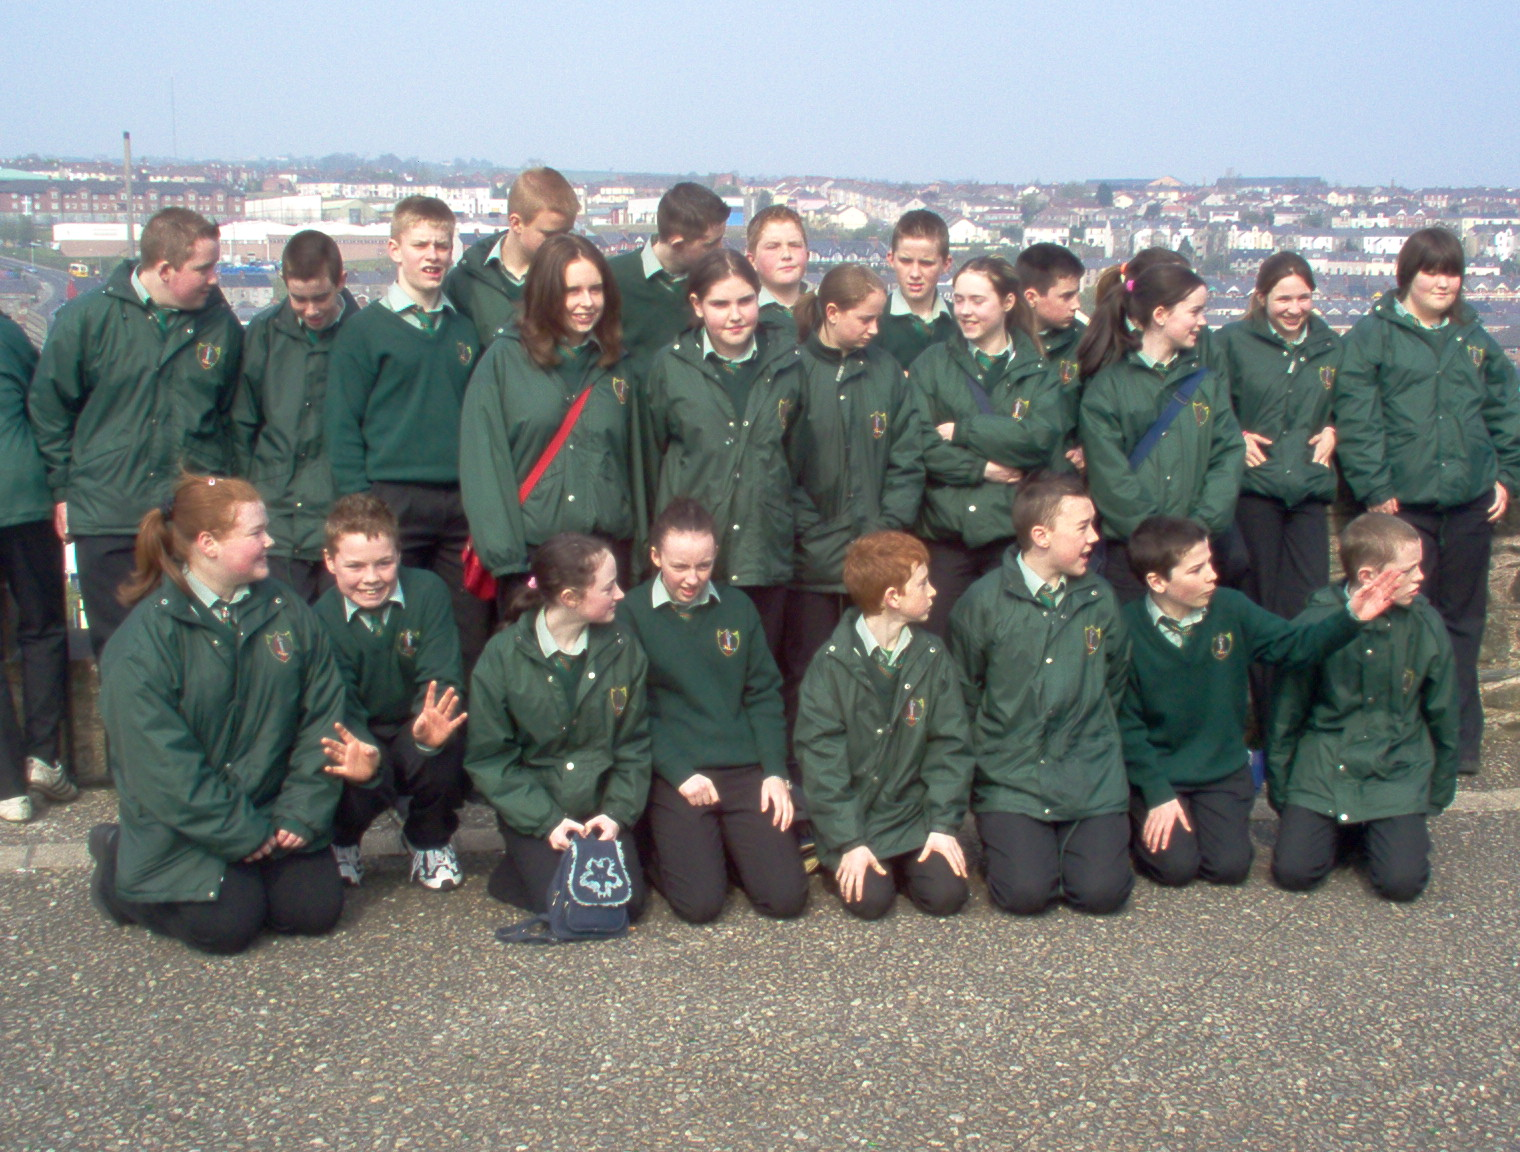 On The Derry Walls-May 2005